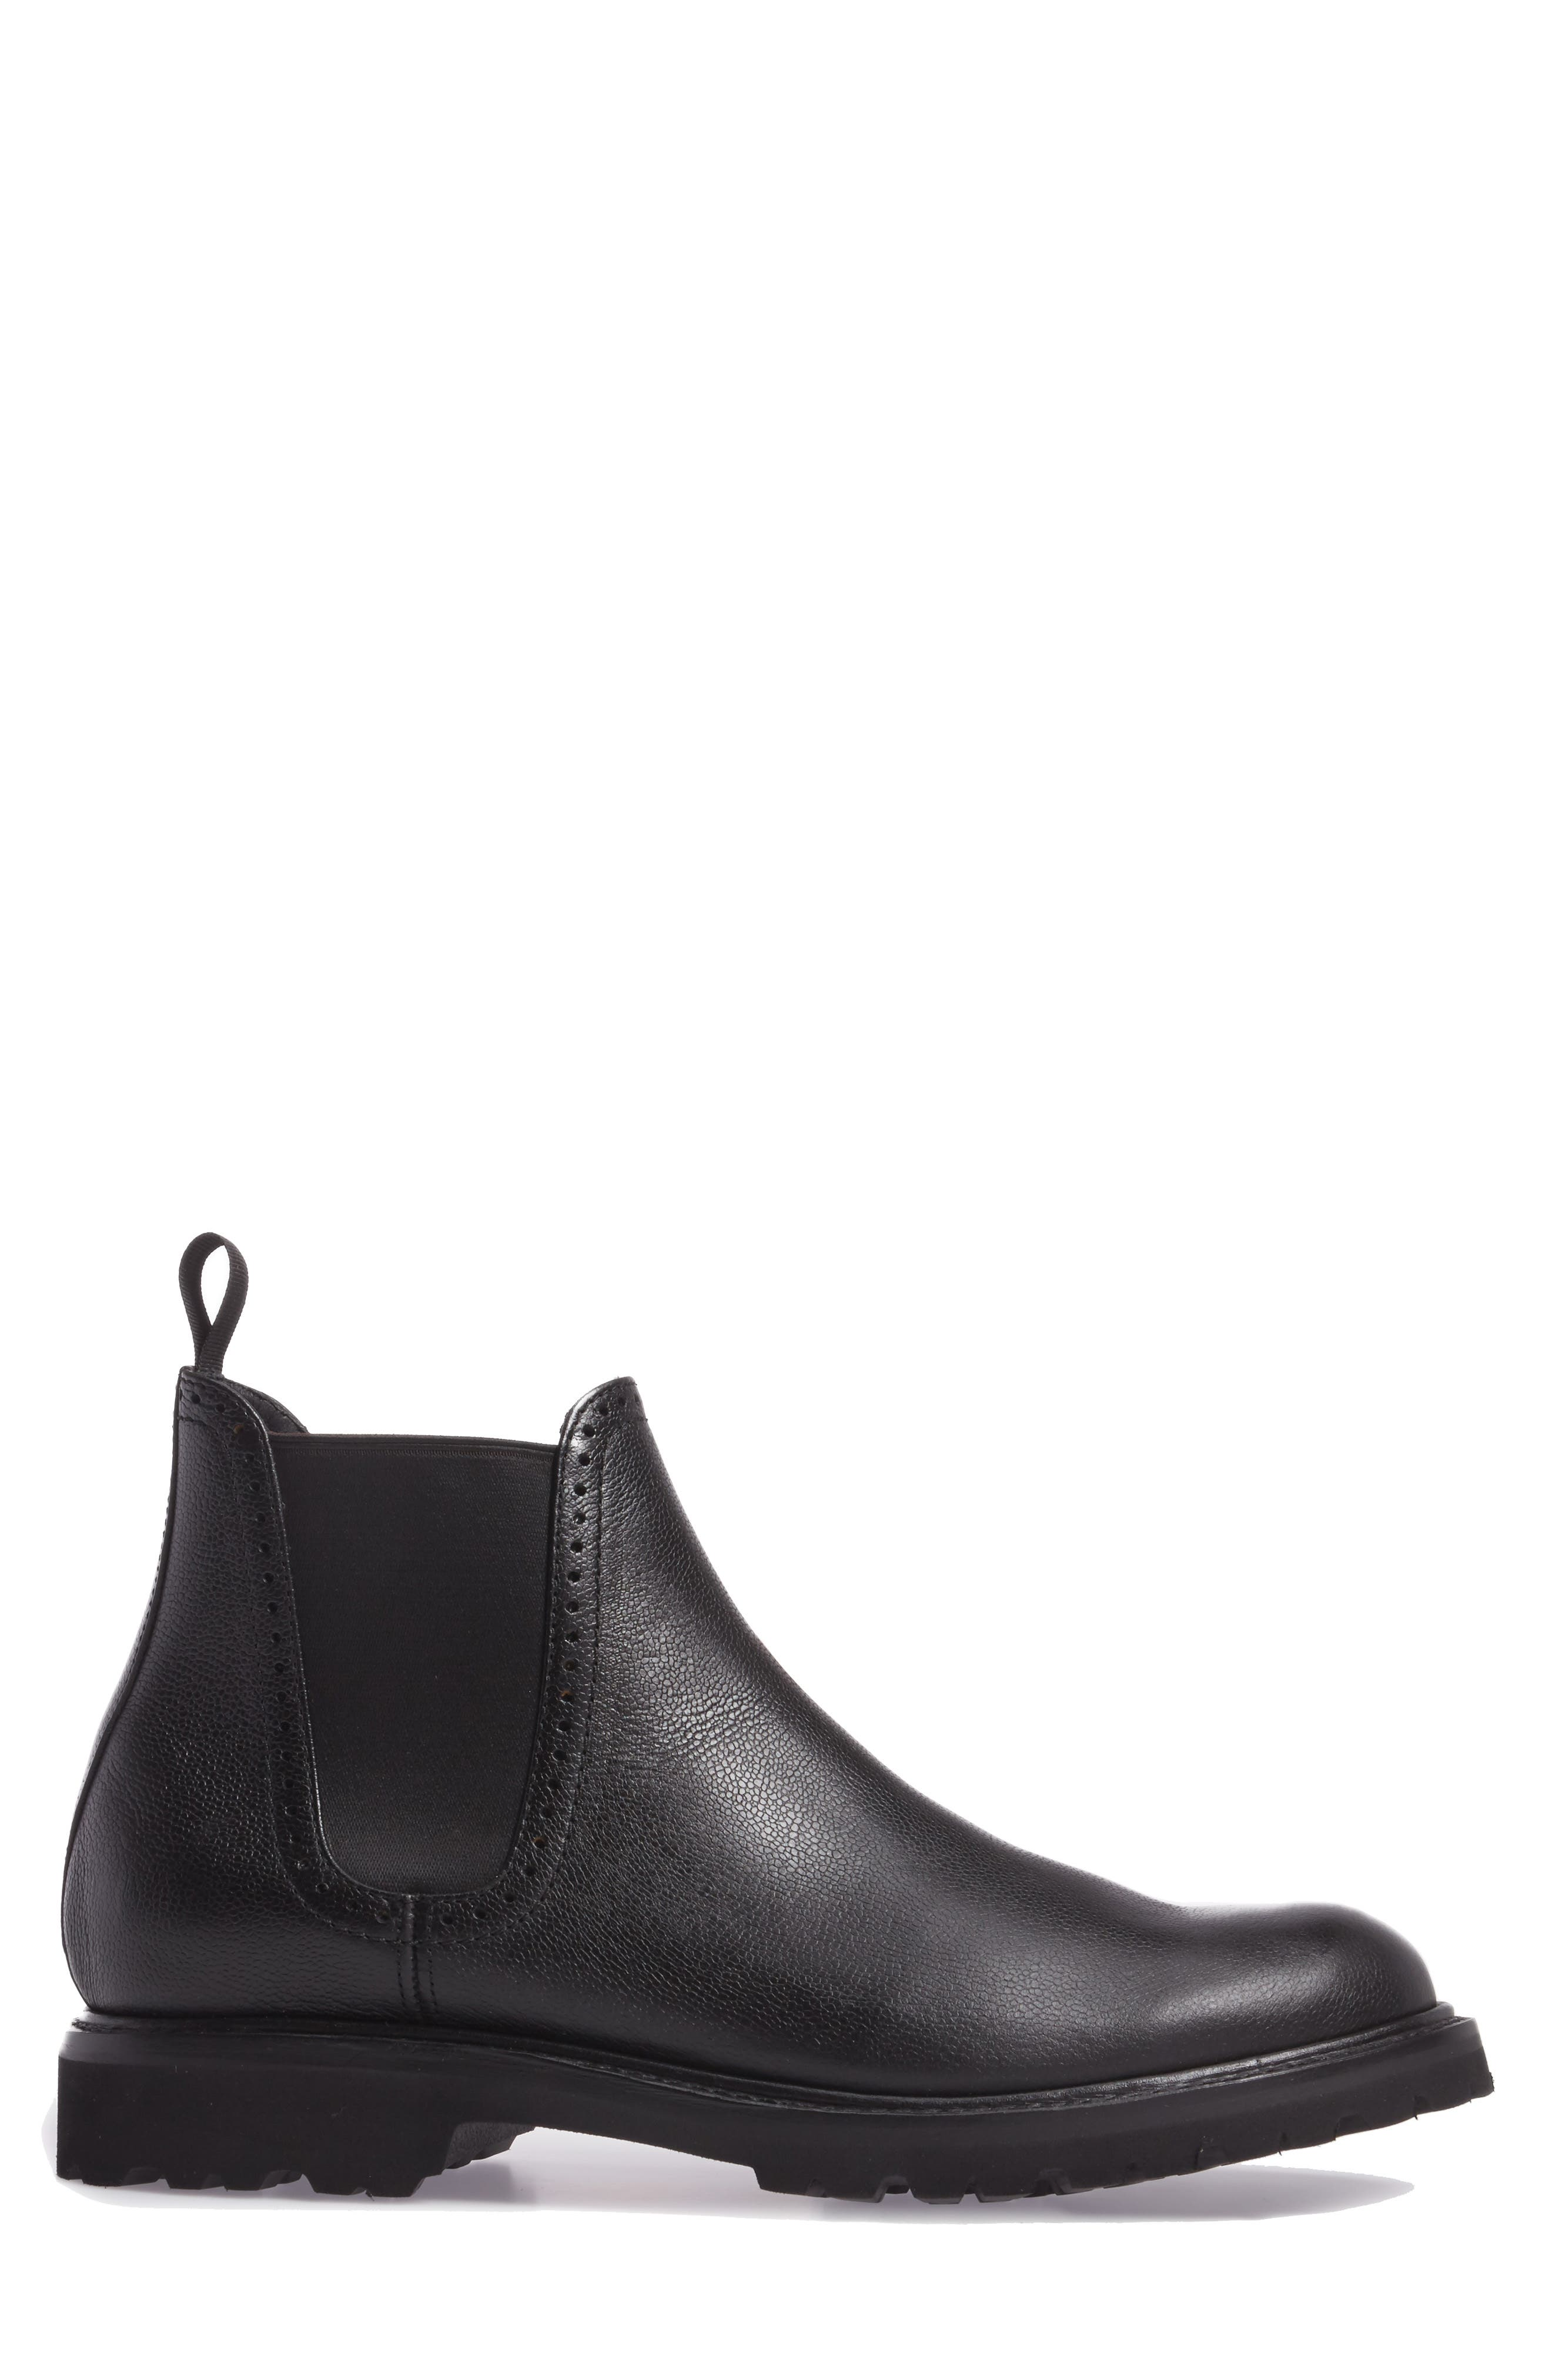 Cromwell Chelsea Boot,                             Alternate thumbnail 3, color,                             001